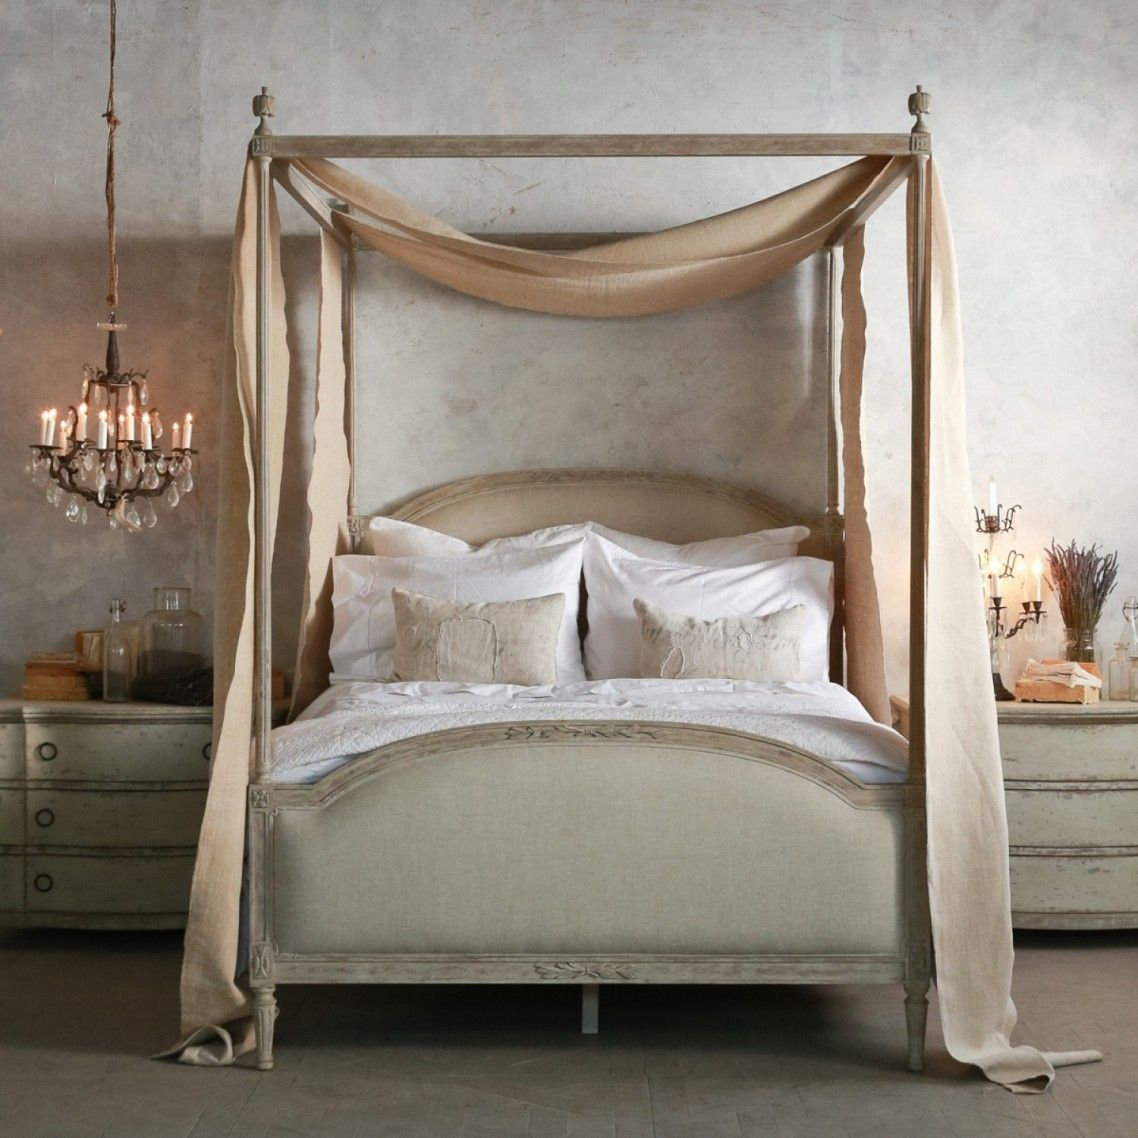 Minimalist Romantic Style Bedroom Decorating Ideas Featuring Eloquence Dauphine Beach